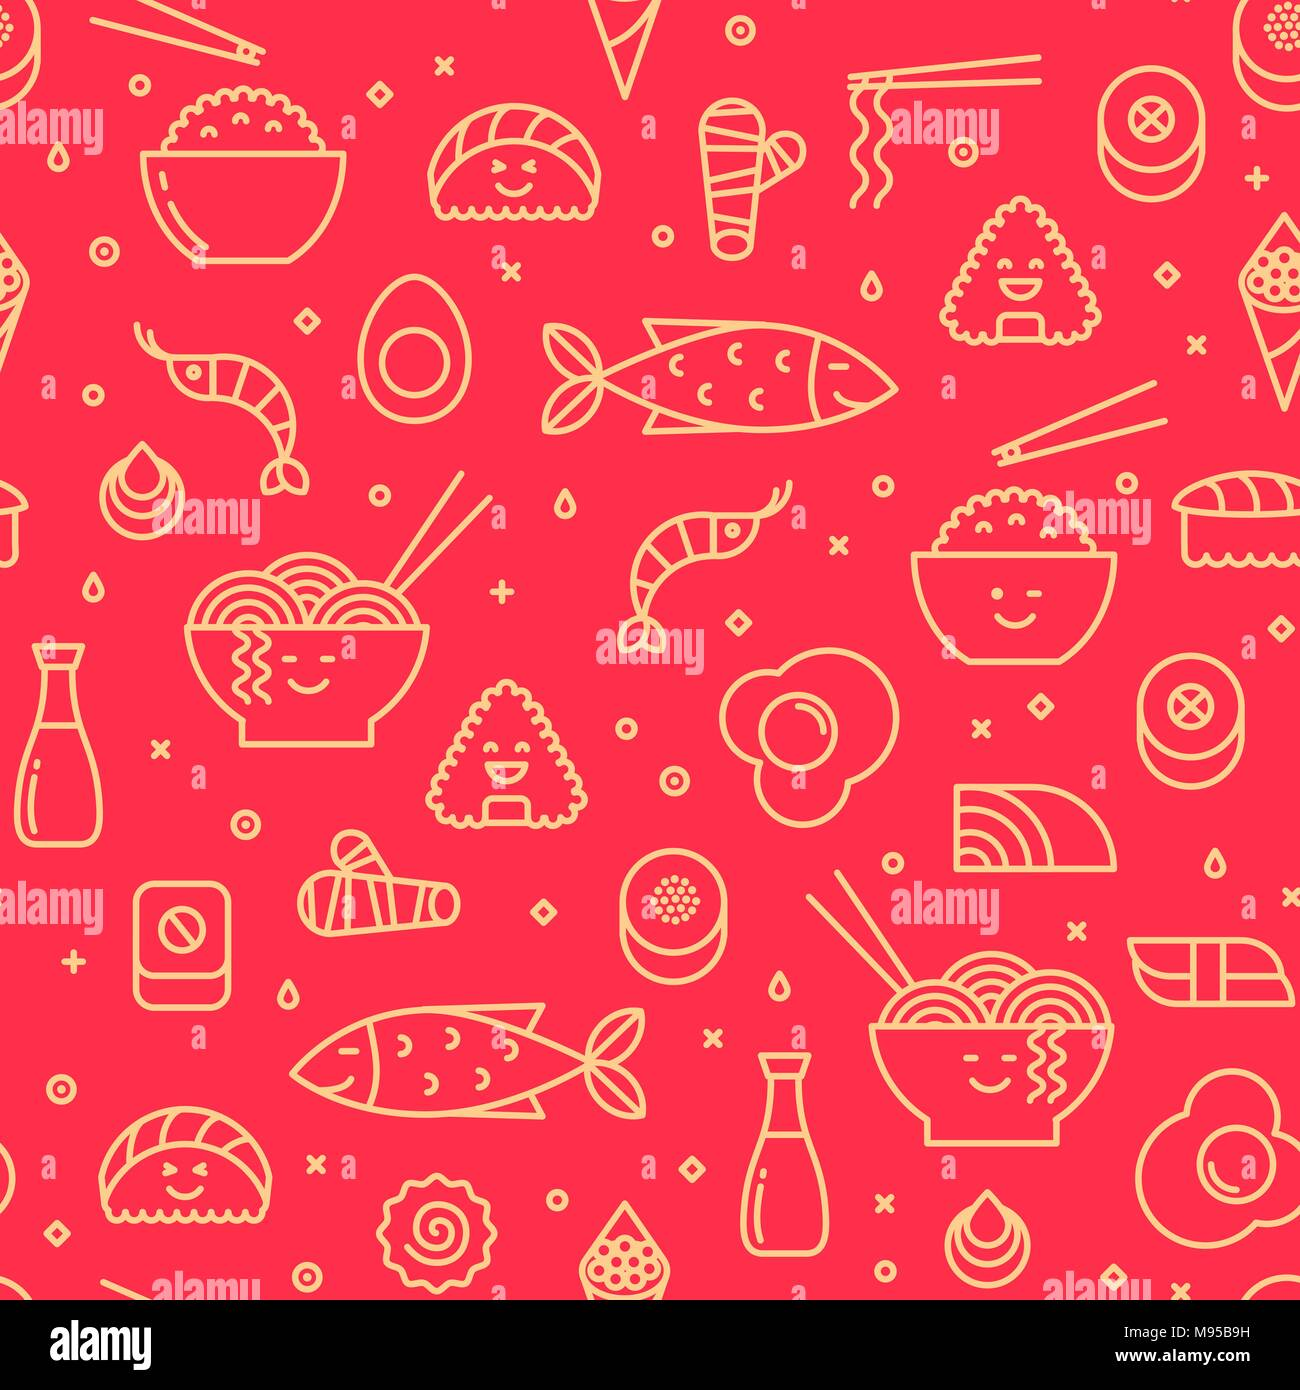 Japanese Pattern Print Stock Photos & Japanese Pattern Print Stock ...